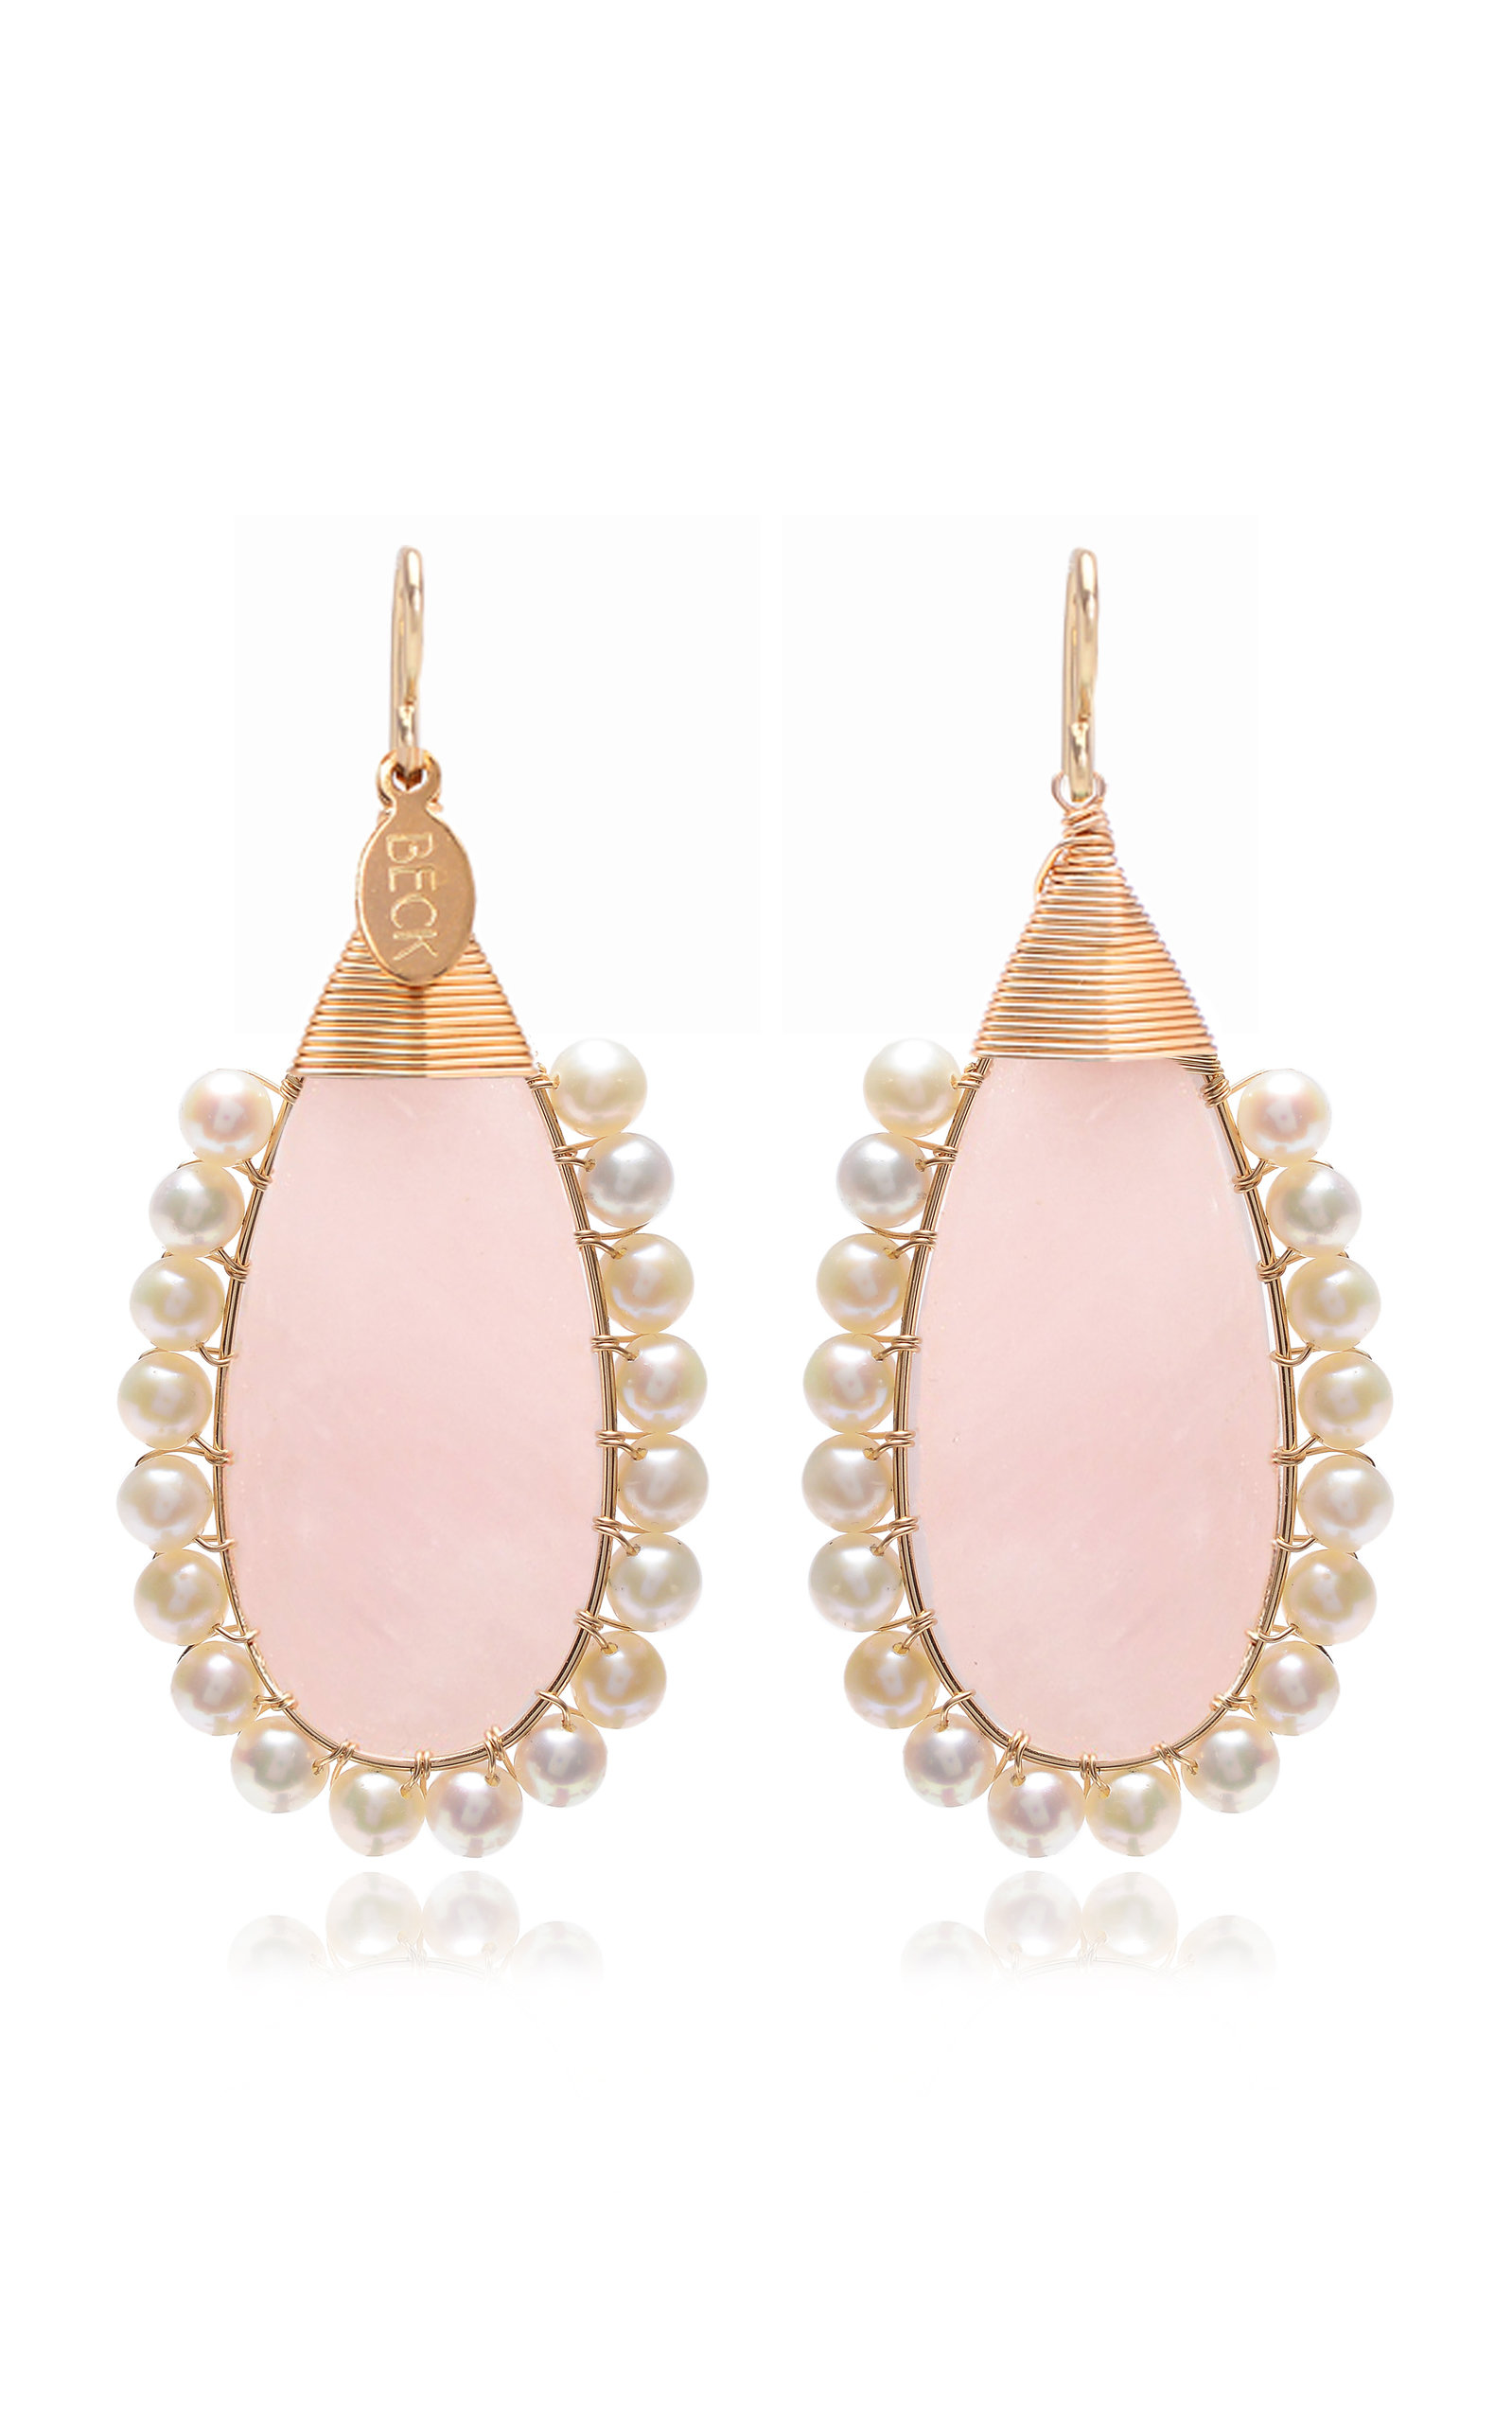 BECK JEWELS ROSE LOLITA GOLD-FILLED ROSE QUARTZ AND PEARL EARRINGS